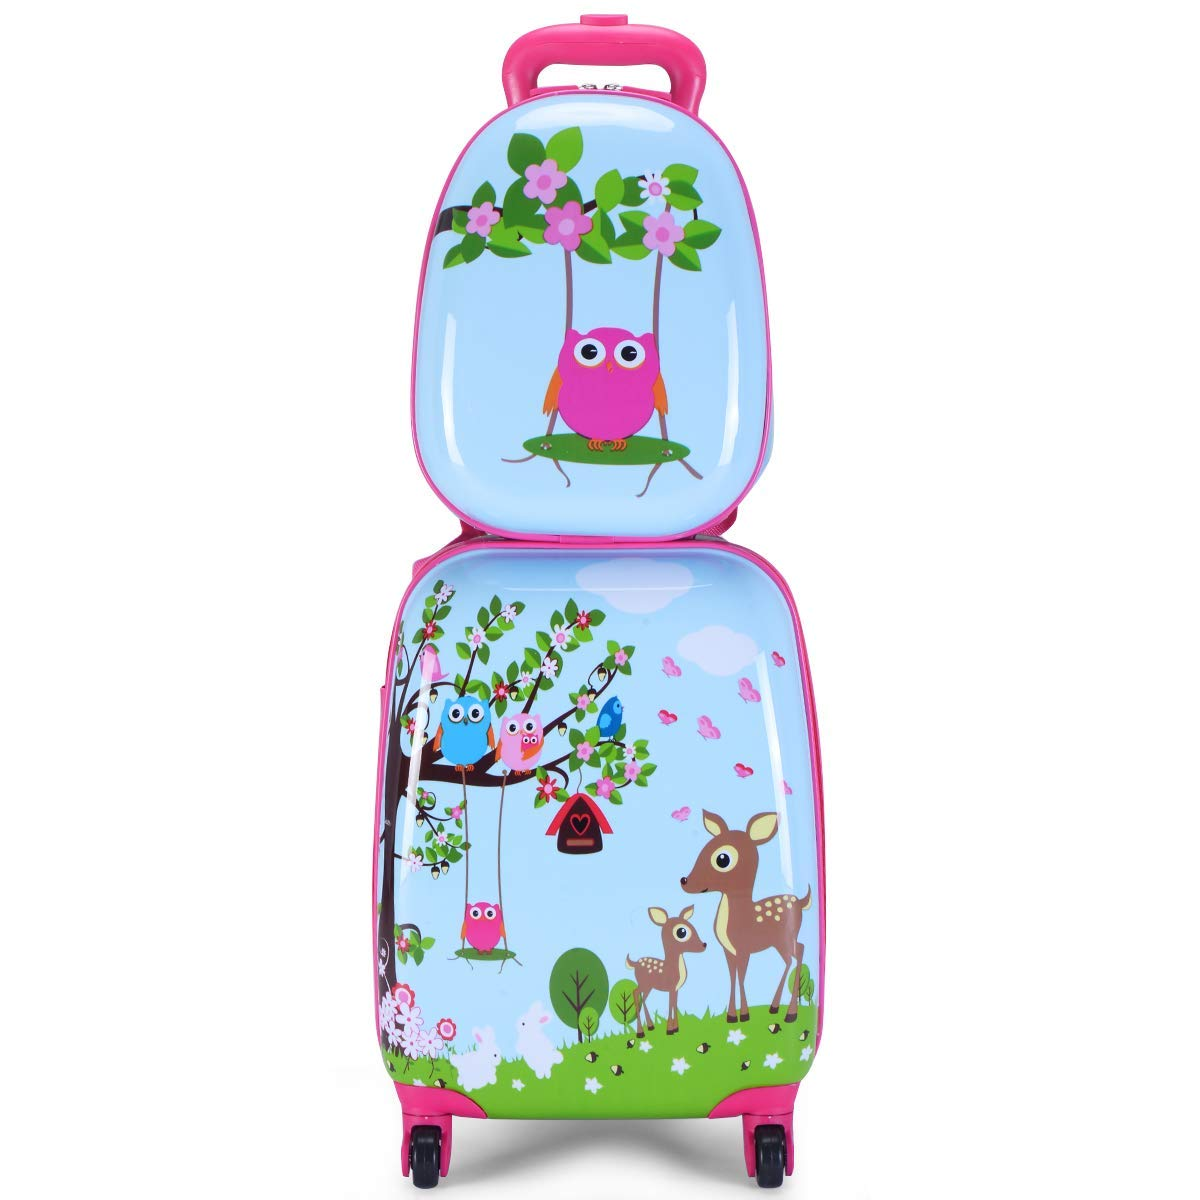 MOREFUN 2 Pcs Kids Travel Luggage Set 18'' Carry on Luggage and 13'' Backpack (Deer) by Morefun Trading (Image #1)